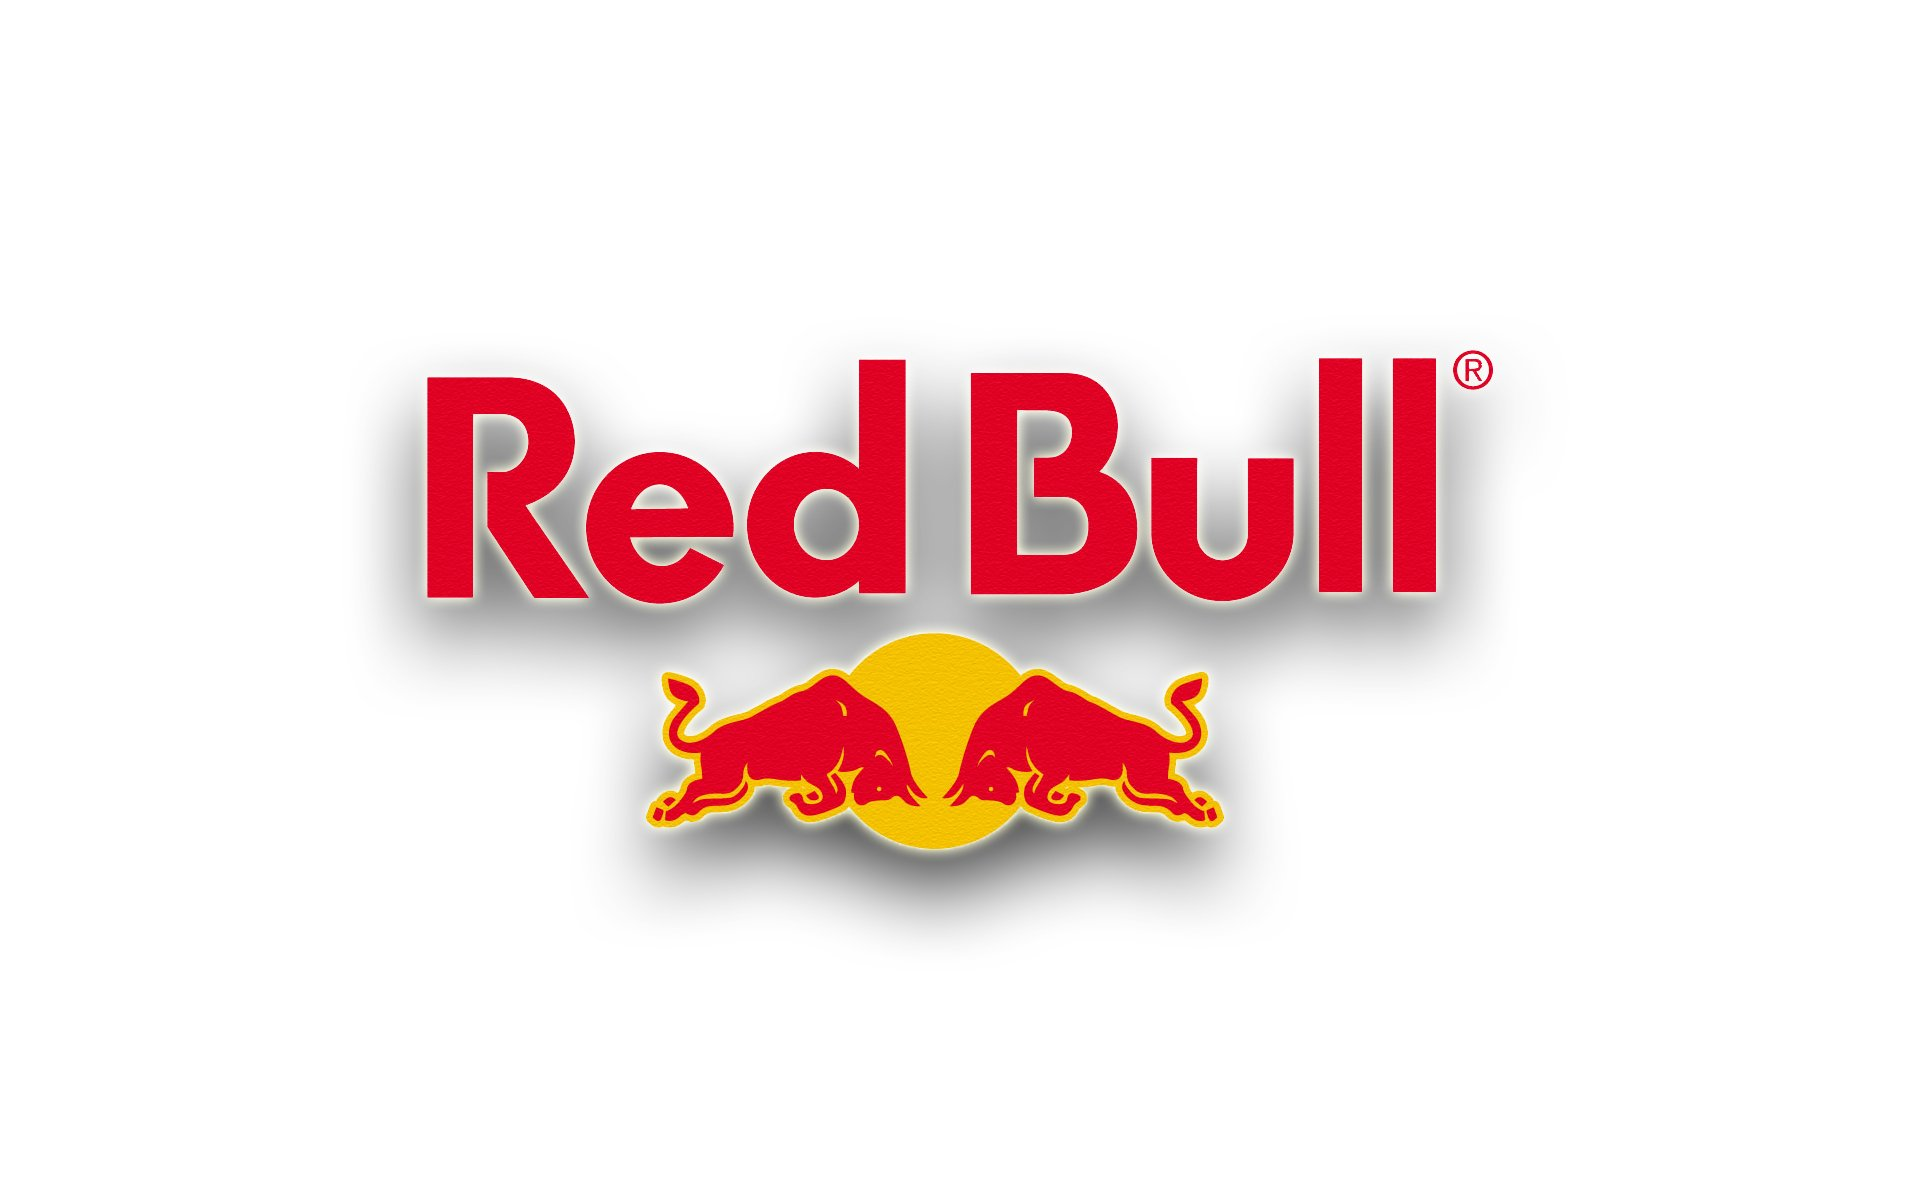 red bull full hd wallpaper and background image | 1920x1200 | id:283549